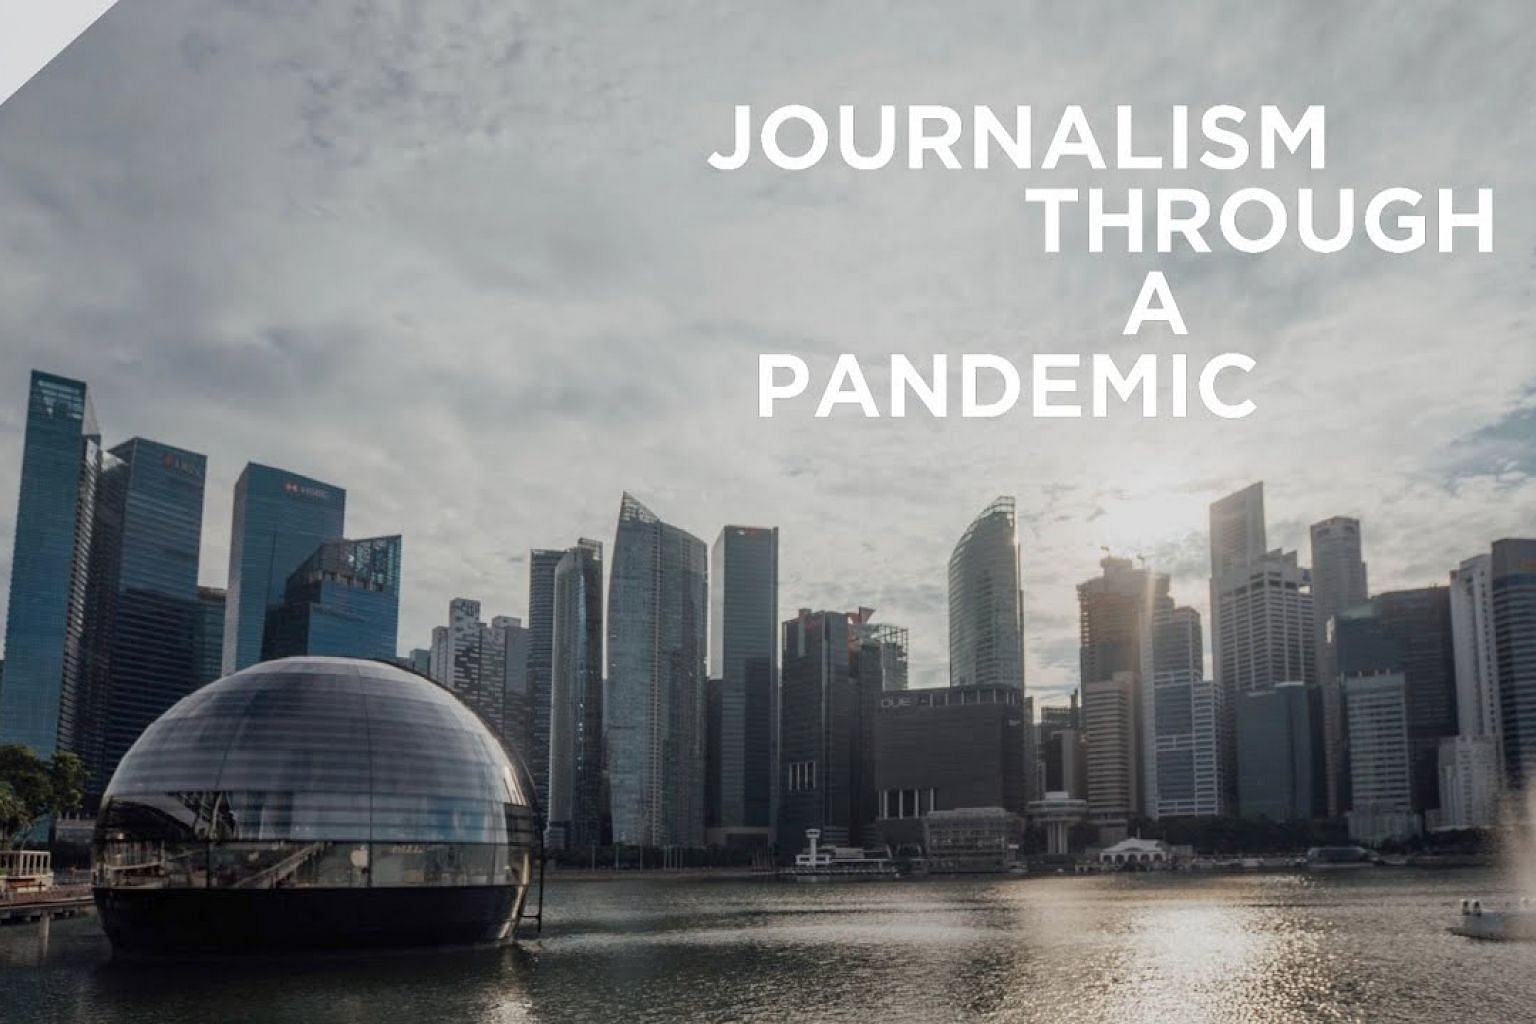 World News Day 2020: Journalism Through a Pandemic | Premiering Sept 28 at 8pm